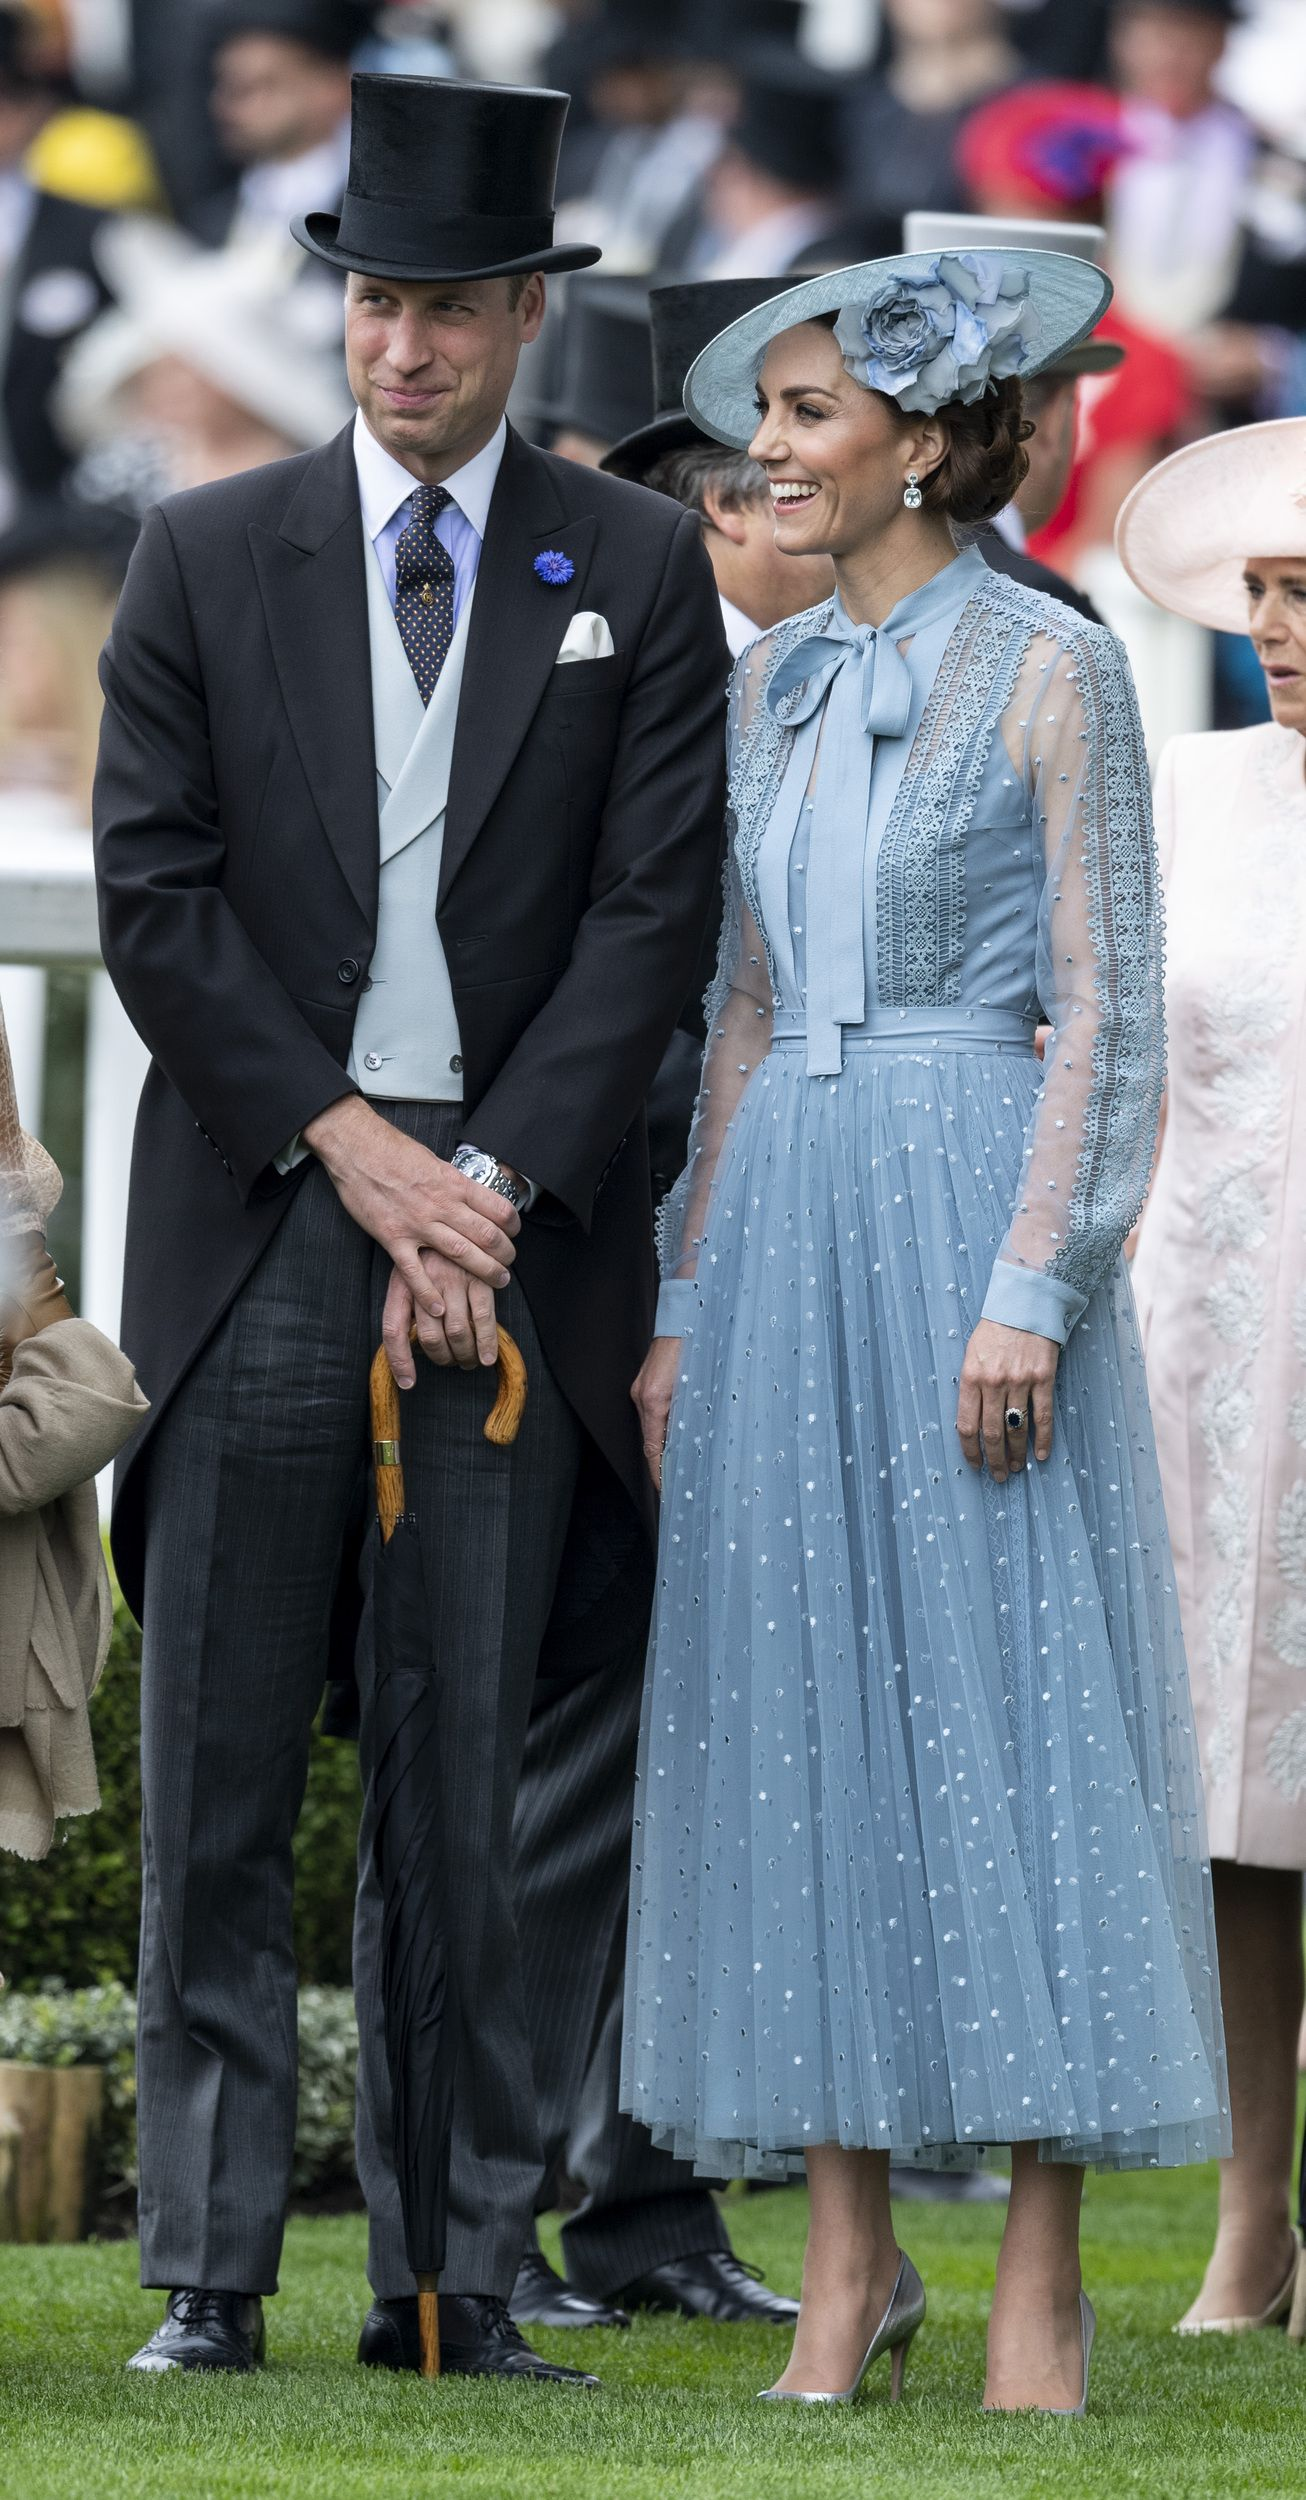 Kate Middleton Dazzles In Blue Elie Saab At The Royal Ascot